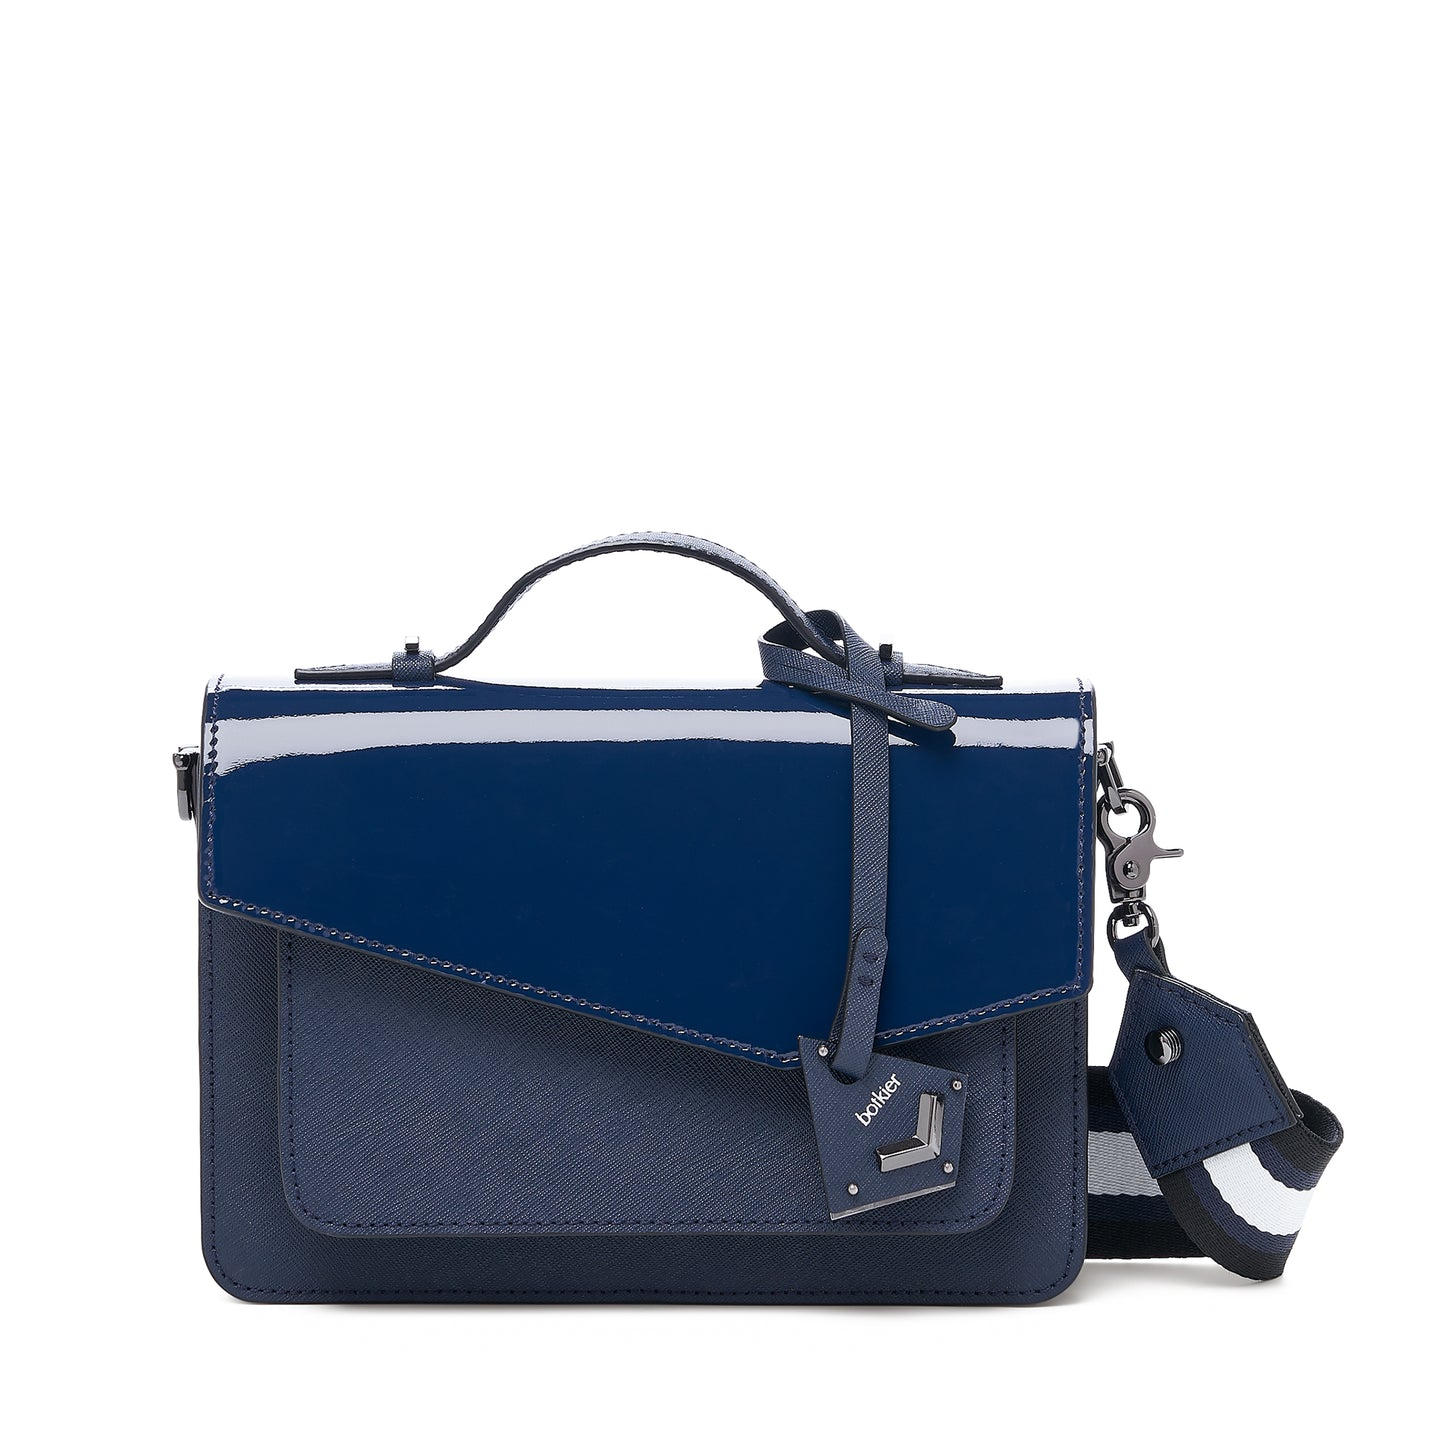 botkier cobble hill structured asymetric flap crossbody in red with navy blue with navy blue paten flap